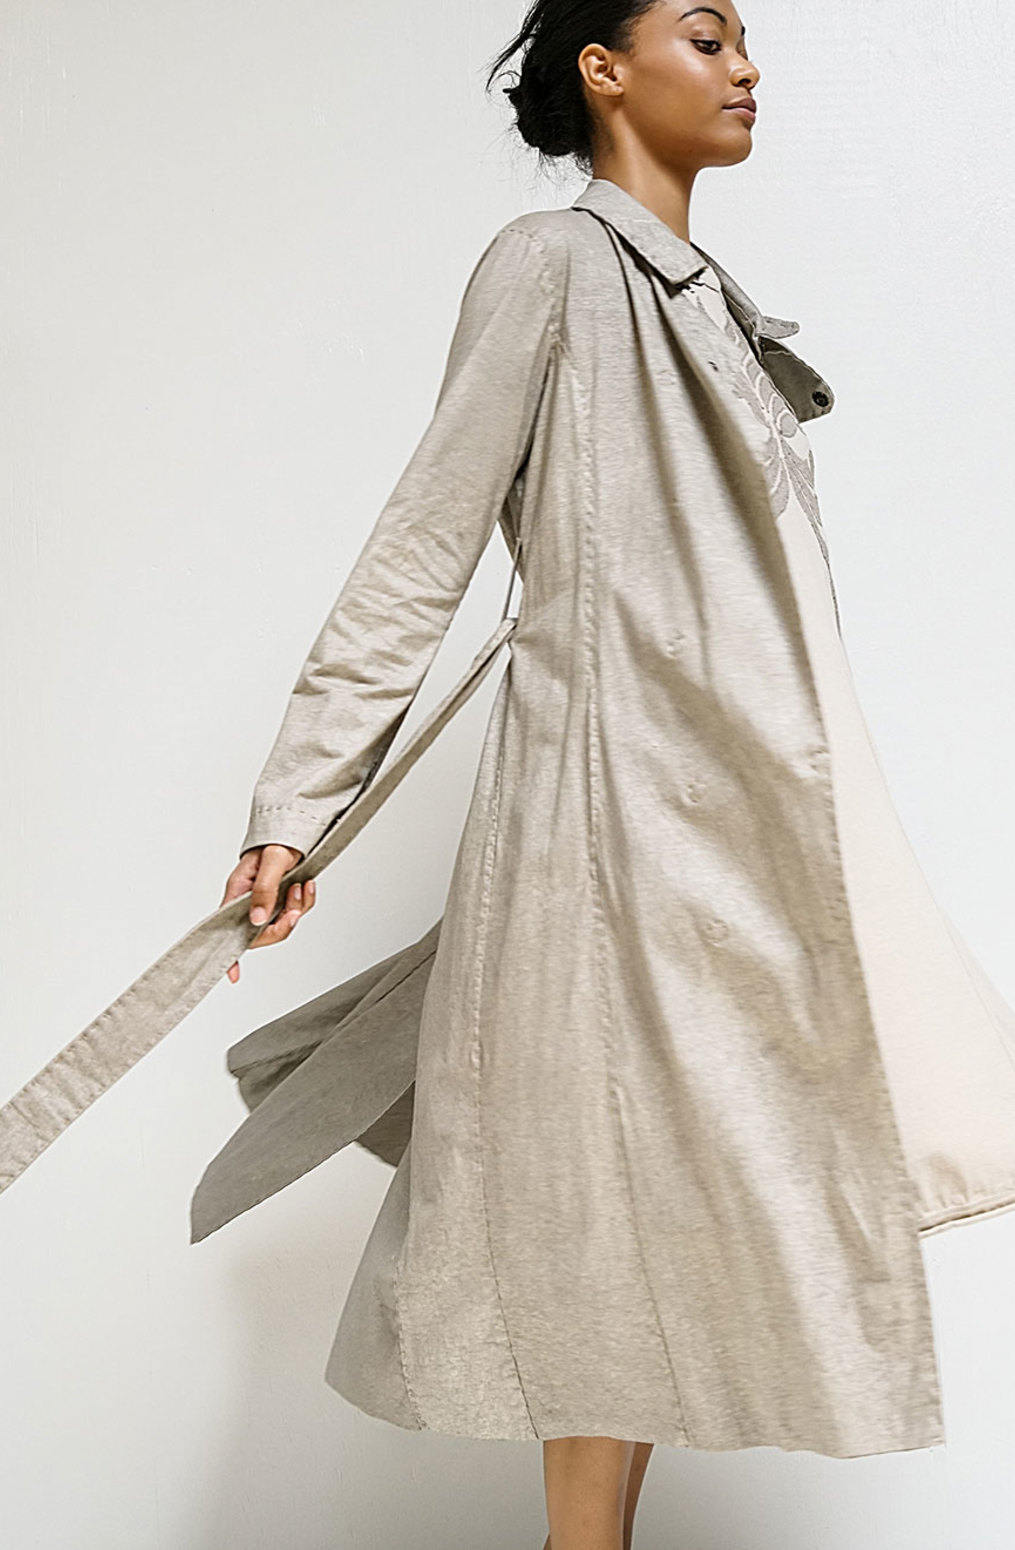 Alabama chanin the classic trench coat 5